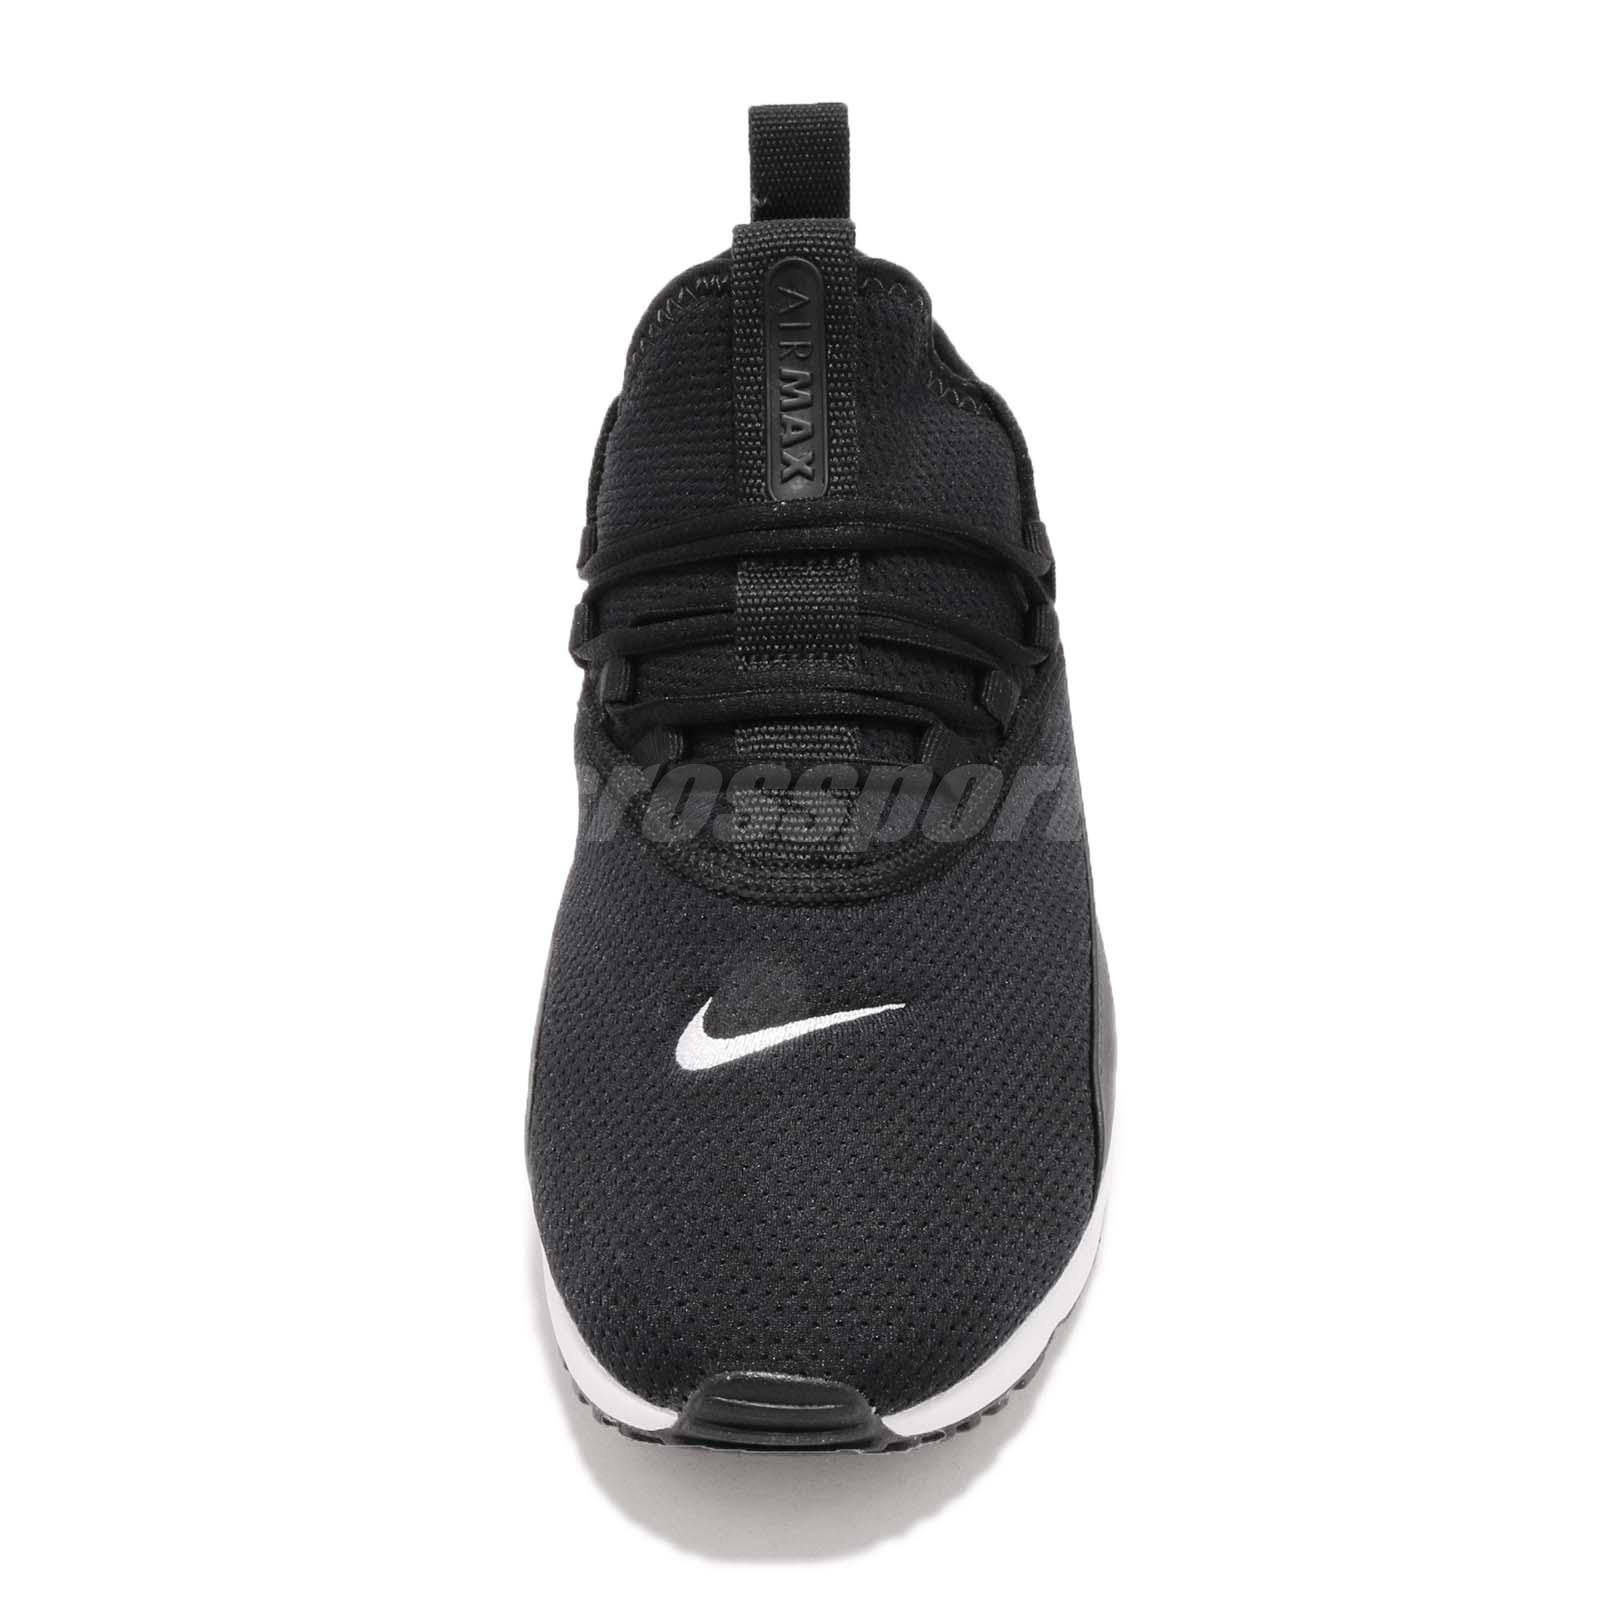 low priced b5748 6a930 Nike Wmns Air Max 90 EZ Black White Women Running Shoes Sneakers ...